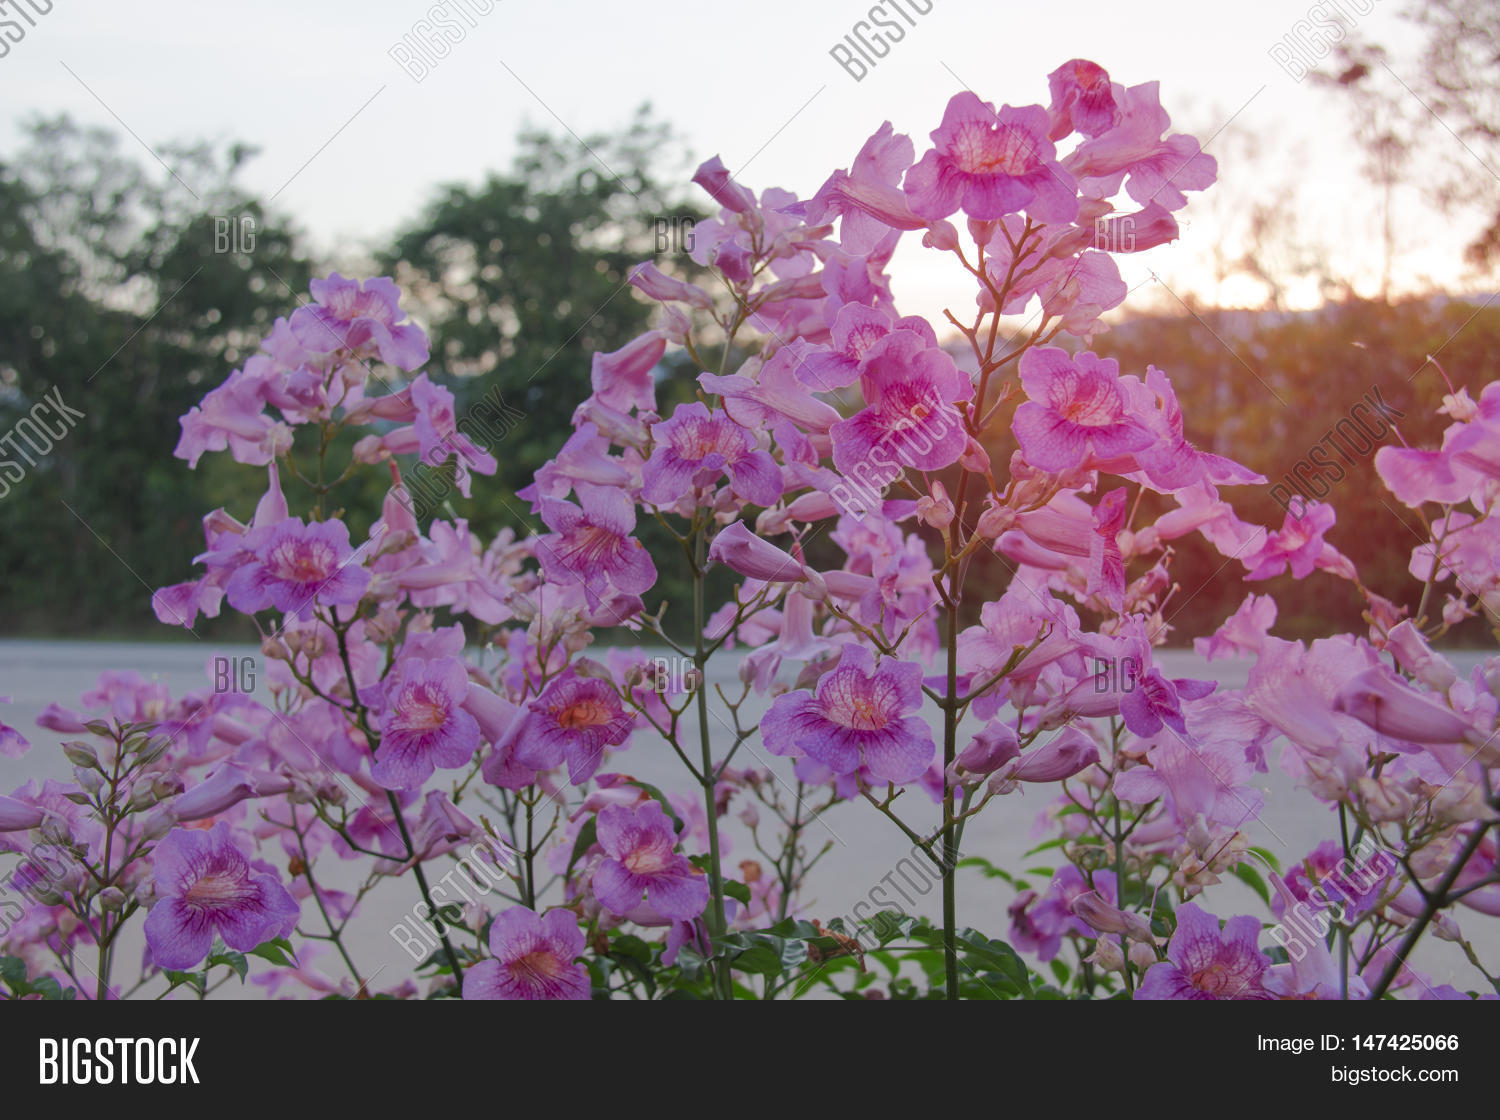 Pink Flower Thailand Image Photo Free Trial Bigstock